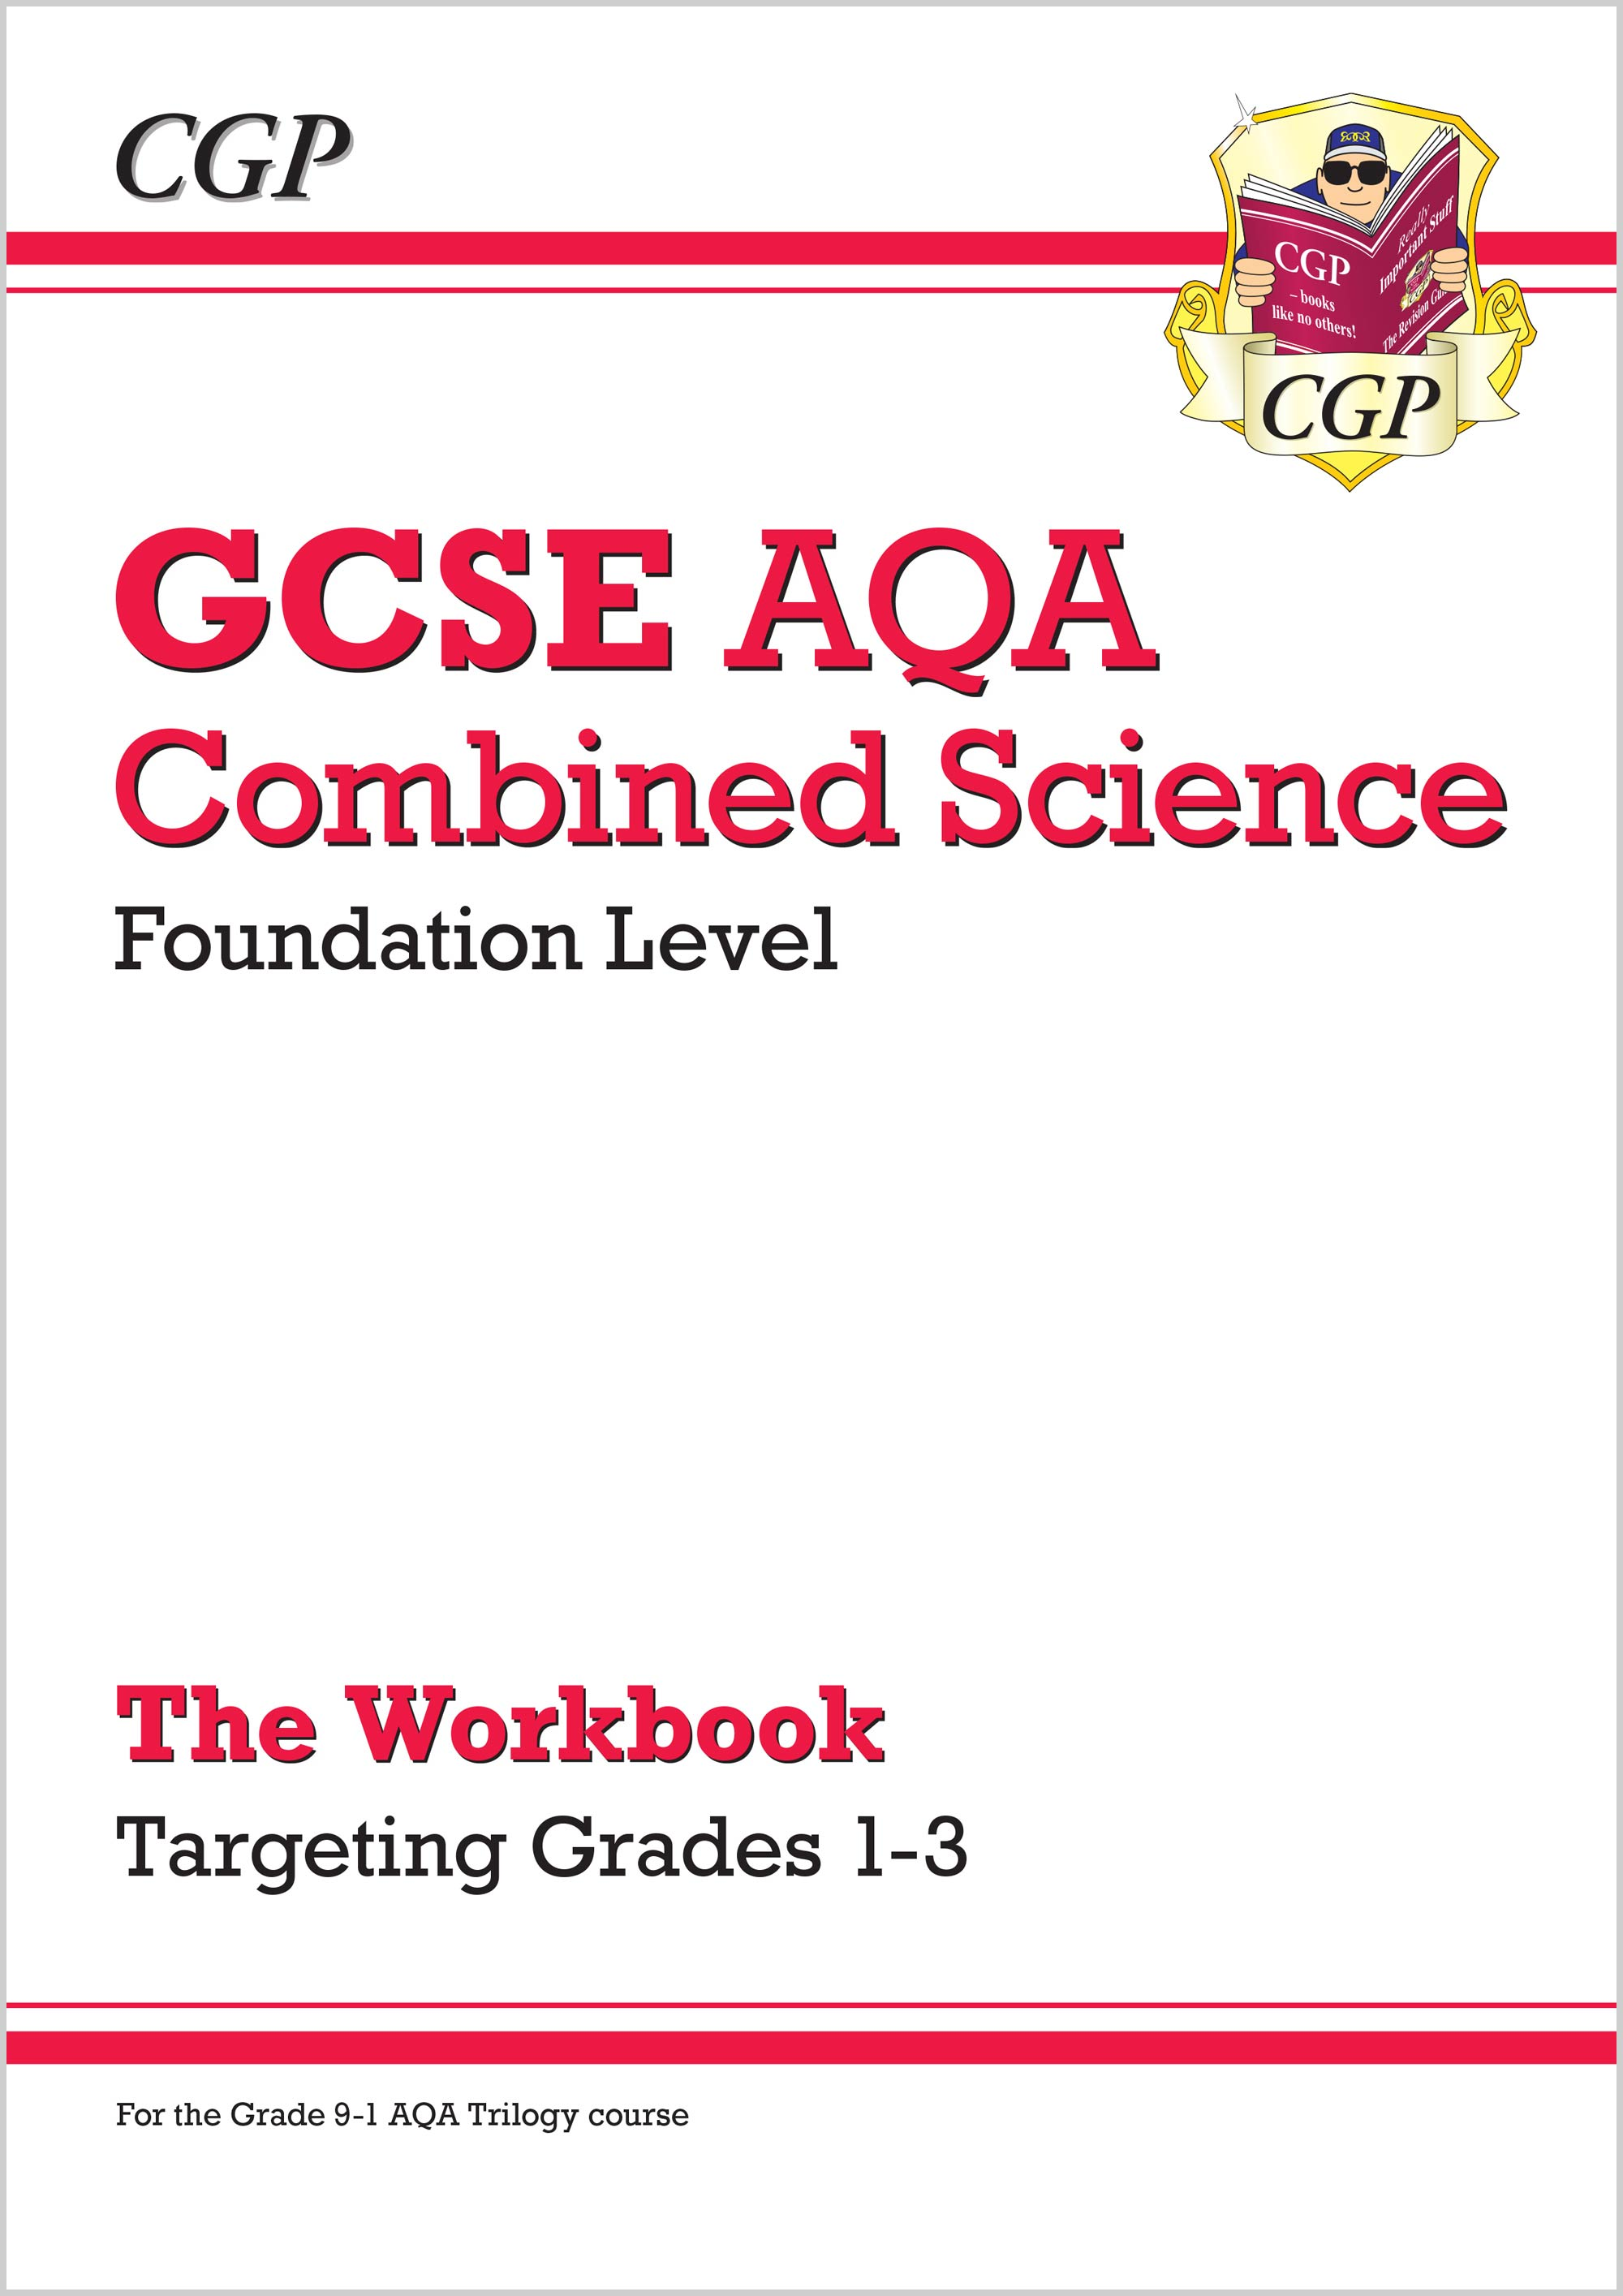 SAFBW41 - New GCSE Combined Science AQA - Foundation: Grade 1-3 Targeted Workbook